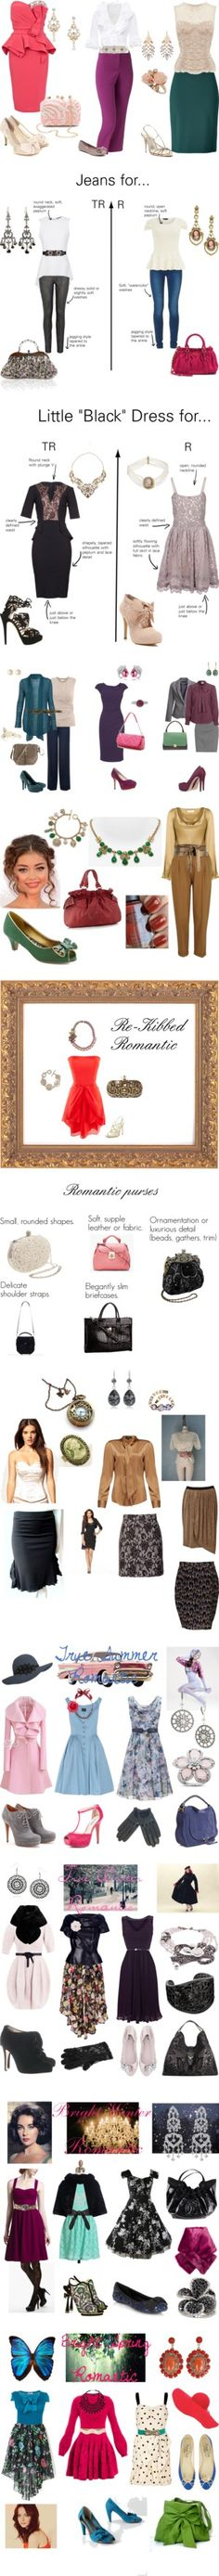 """""""Romantic body type: """"Lushly Feminine."""""""" by in-vero-pulcritudo ❤ liked on Polyvore"""